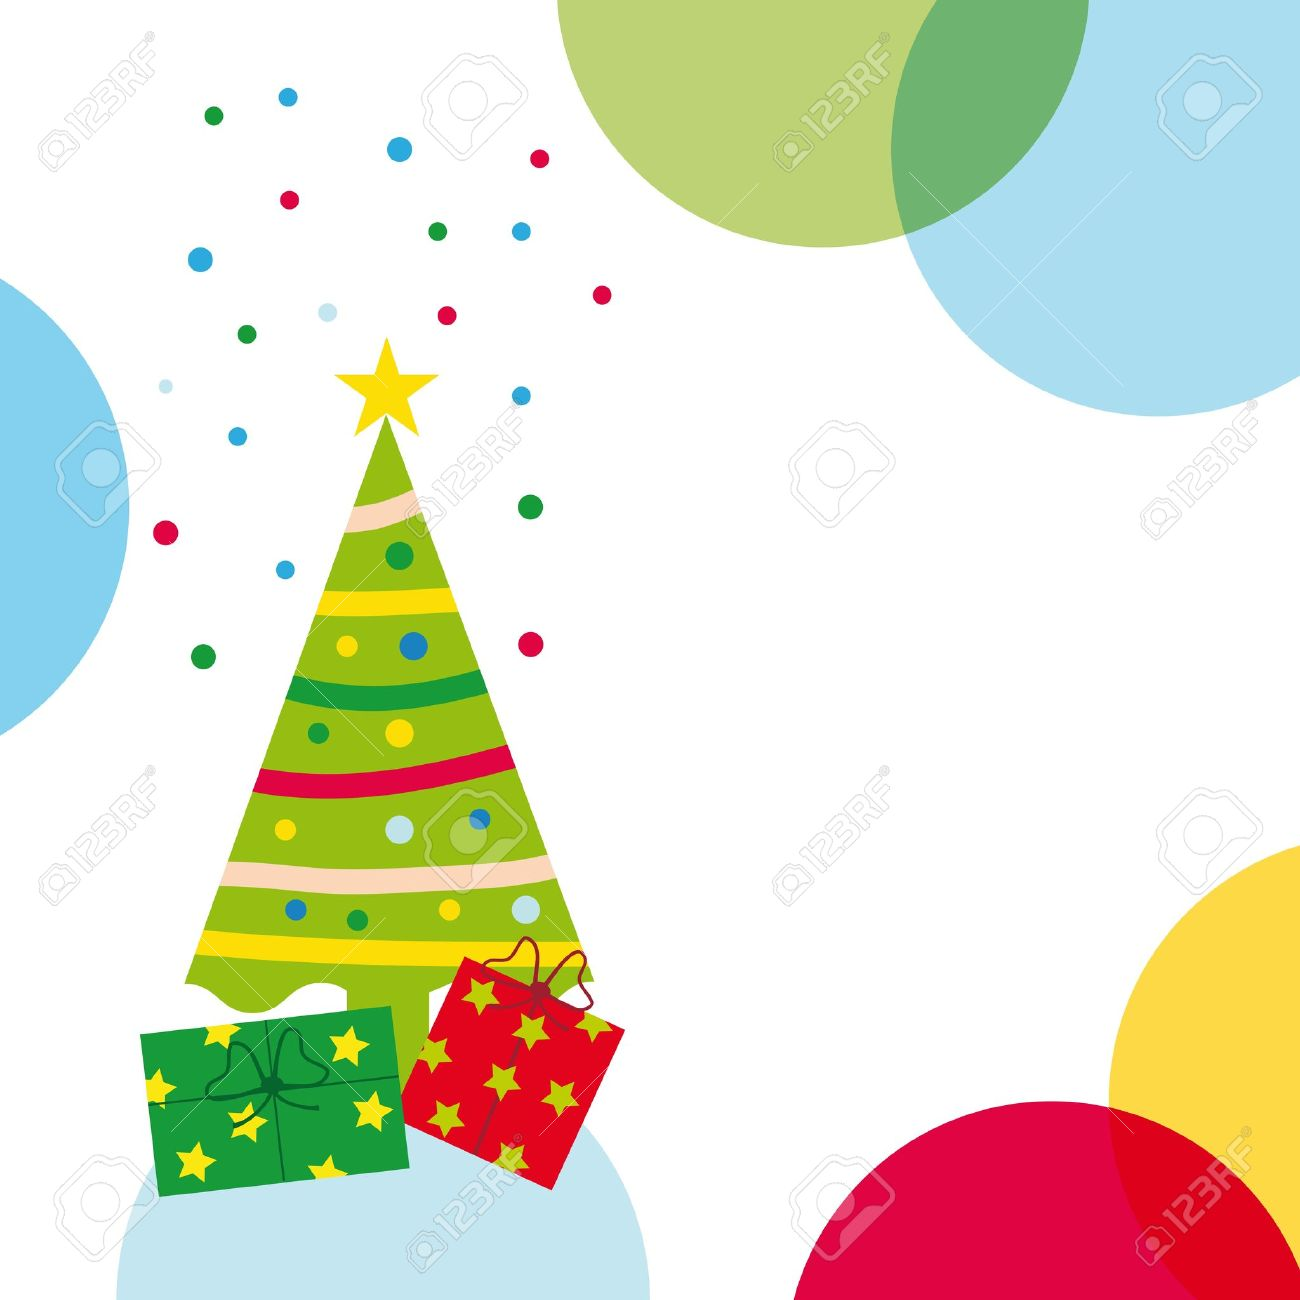 Christmas And New Year Background Royalty Free Cliparts, Vectors ...